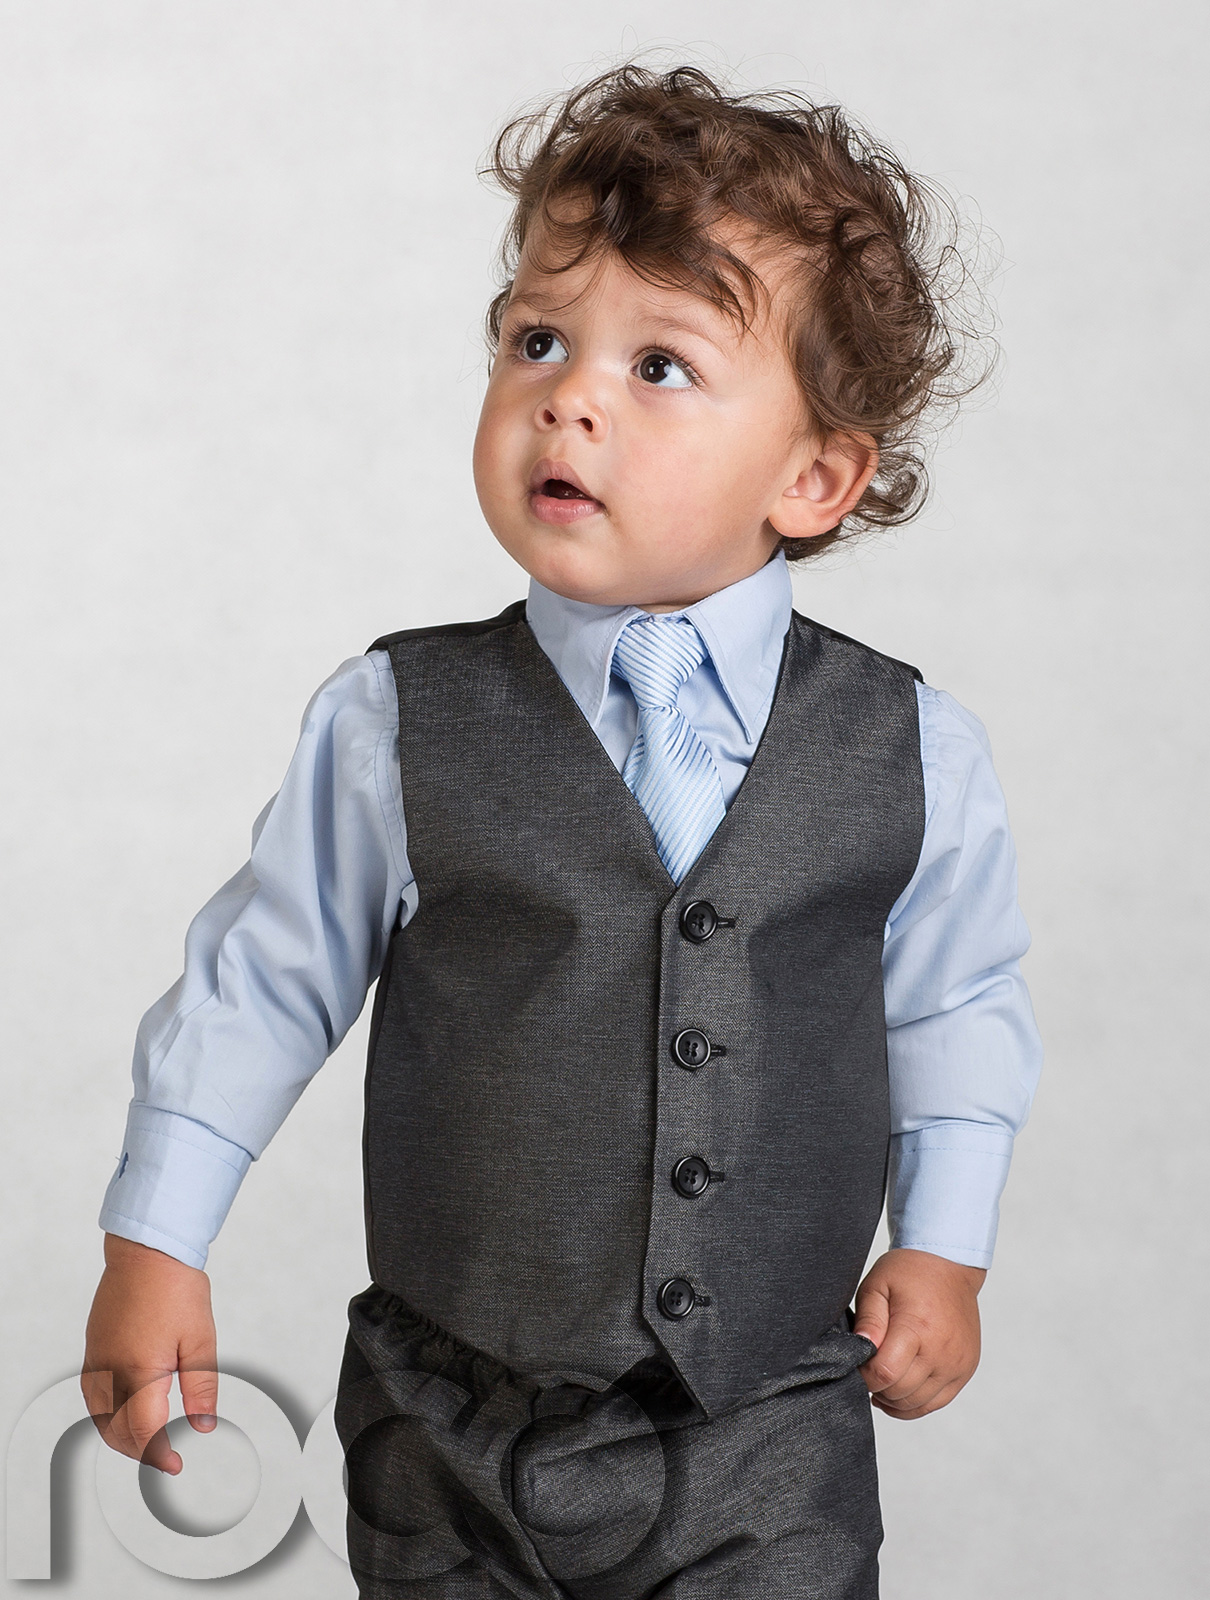 Boys grey suit page boy suits baby boys black shoes for Shirt and tie for charcoal suit